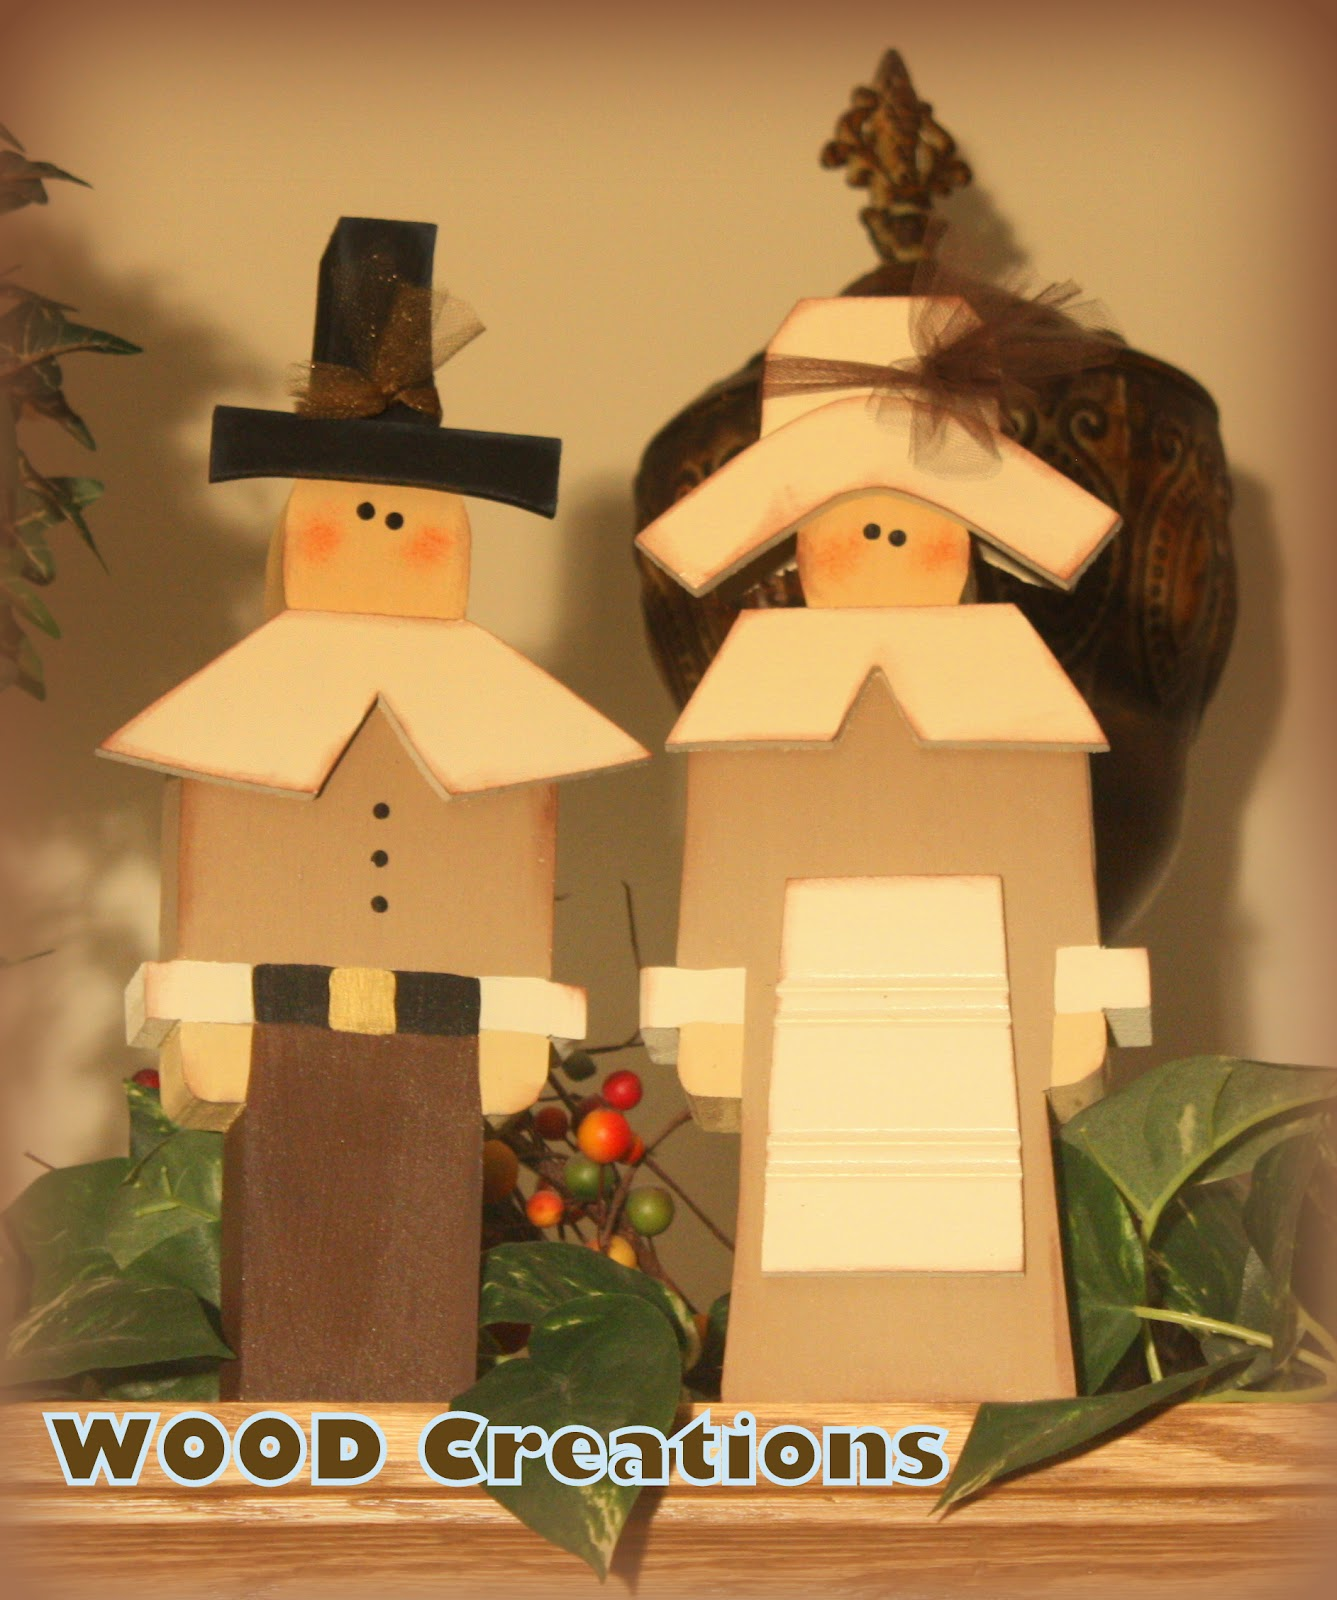 Wood Creations Thanksgiving Crafts Are Here